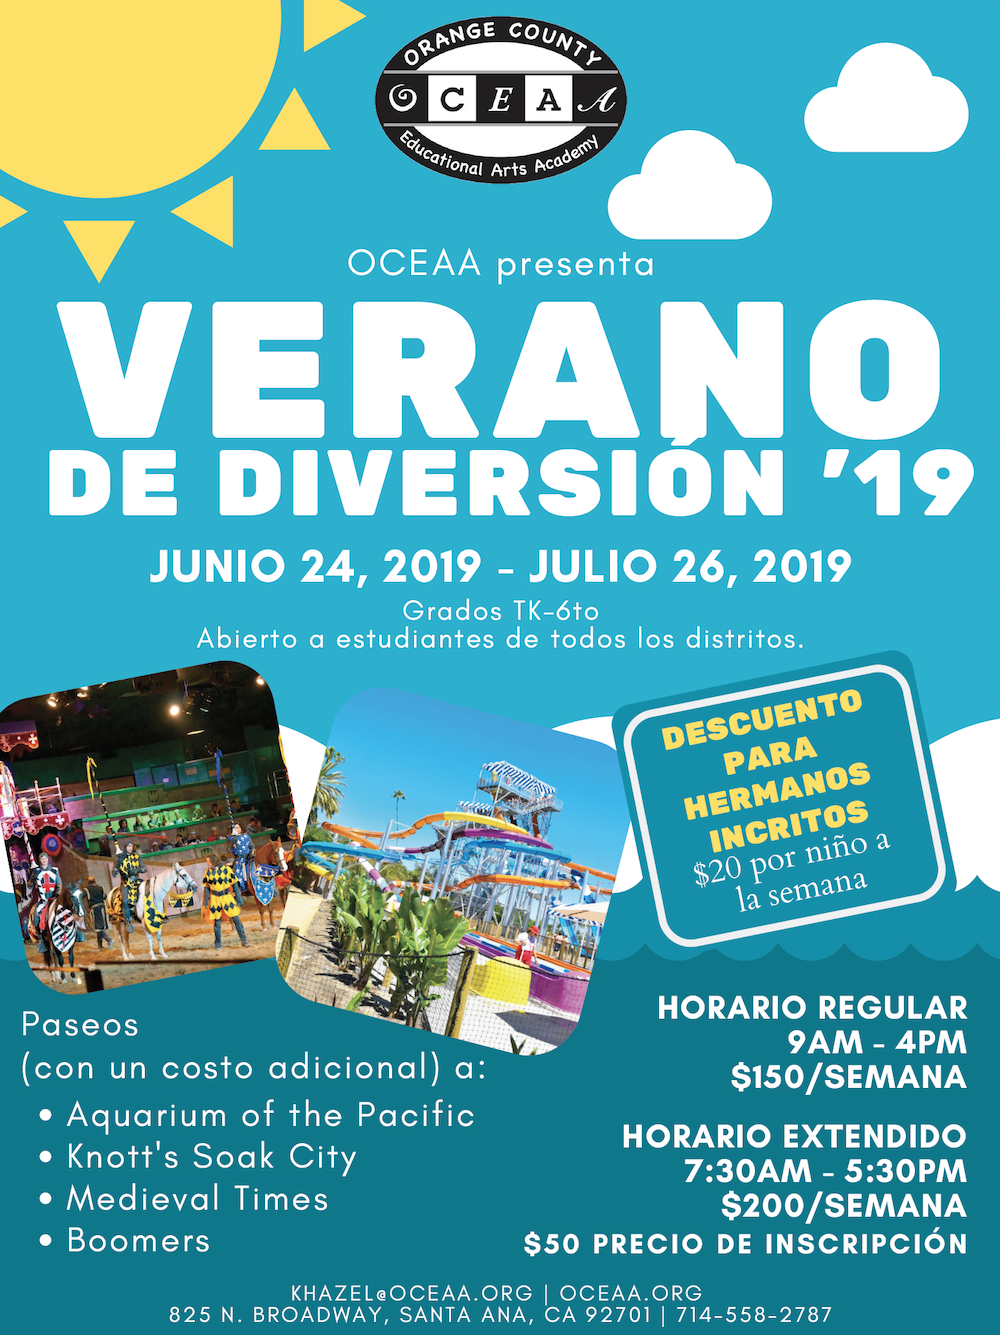 Verano de diversion - OCEAA.org